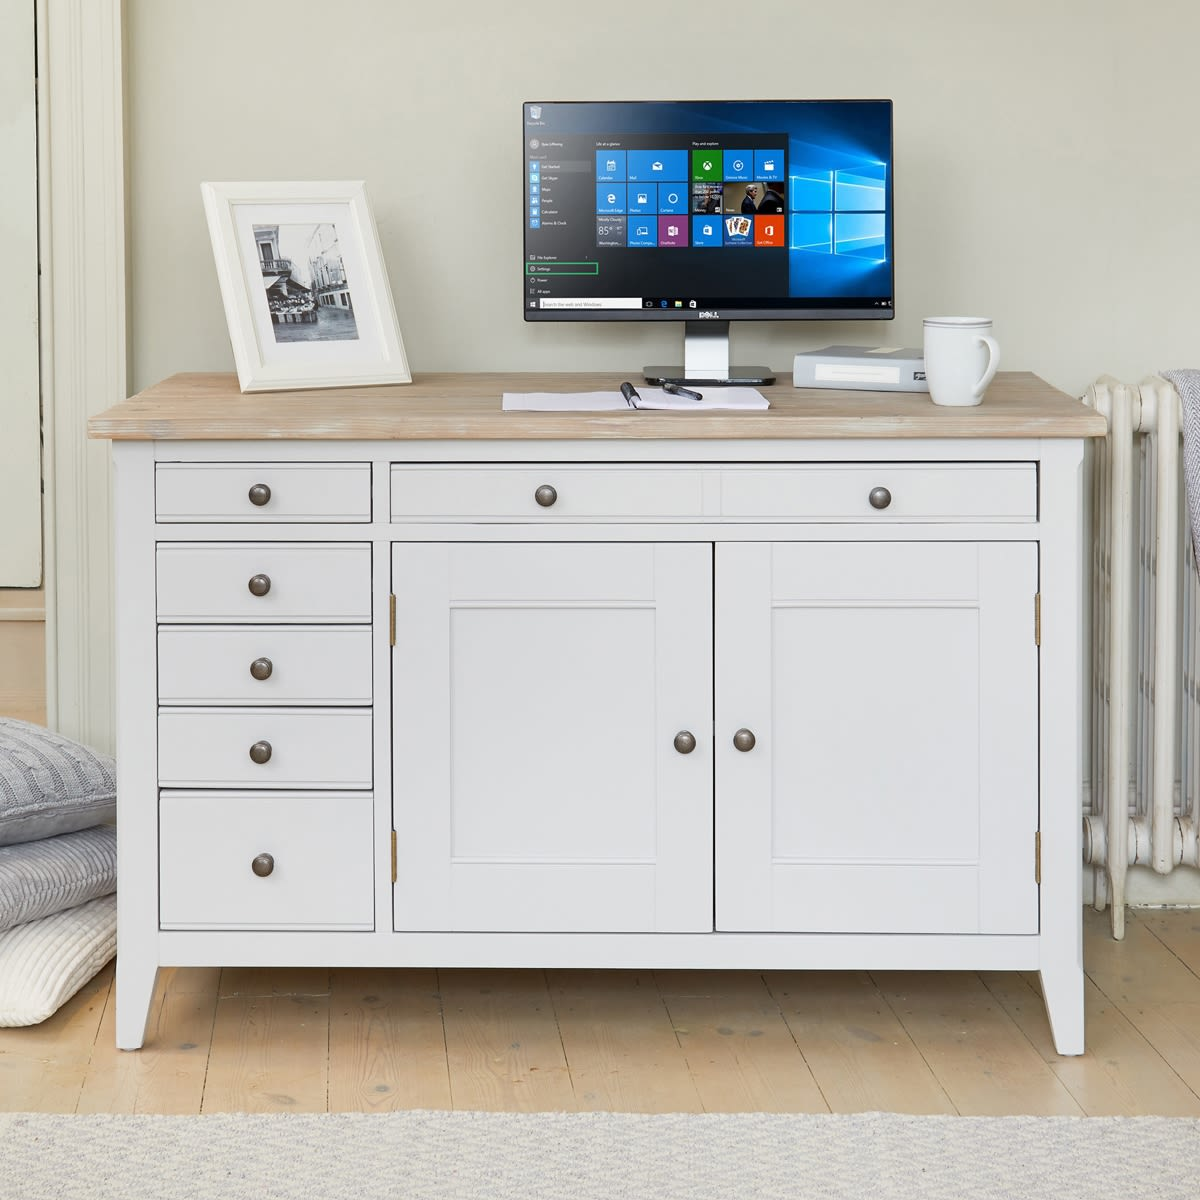 Home Office Sets Office Furniture Elements: Signature Grey Hidden Home Office Desk Was £720.00 Now £